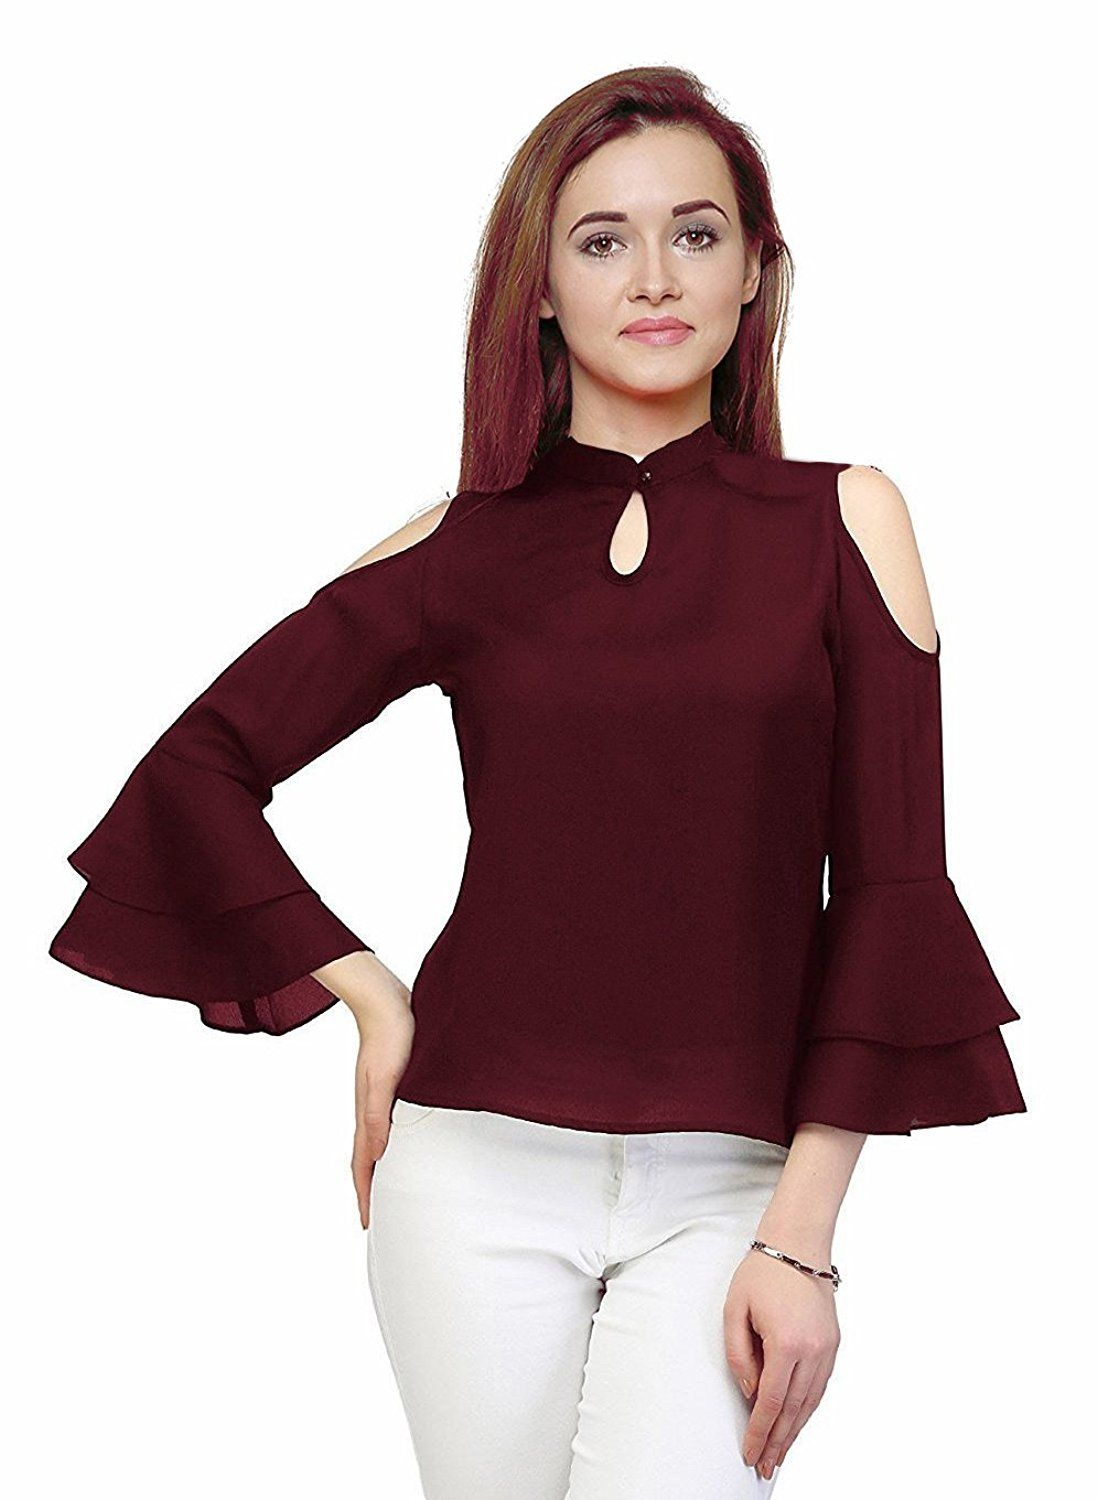 ba4200ff07fa5b Buy western top for women that is cold shoulder sleeve with design in  maroon colour. Variety of tops are available in all sizes for girls and  women.